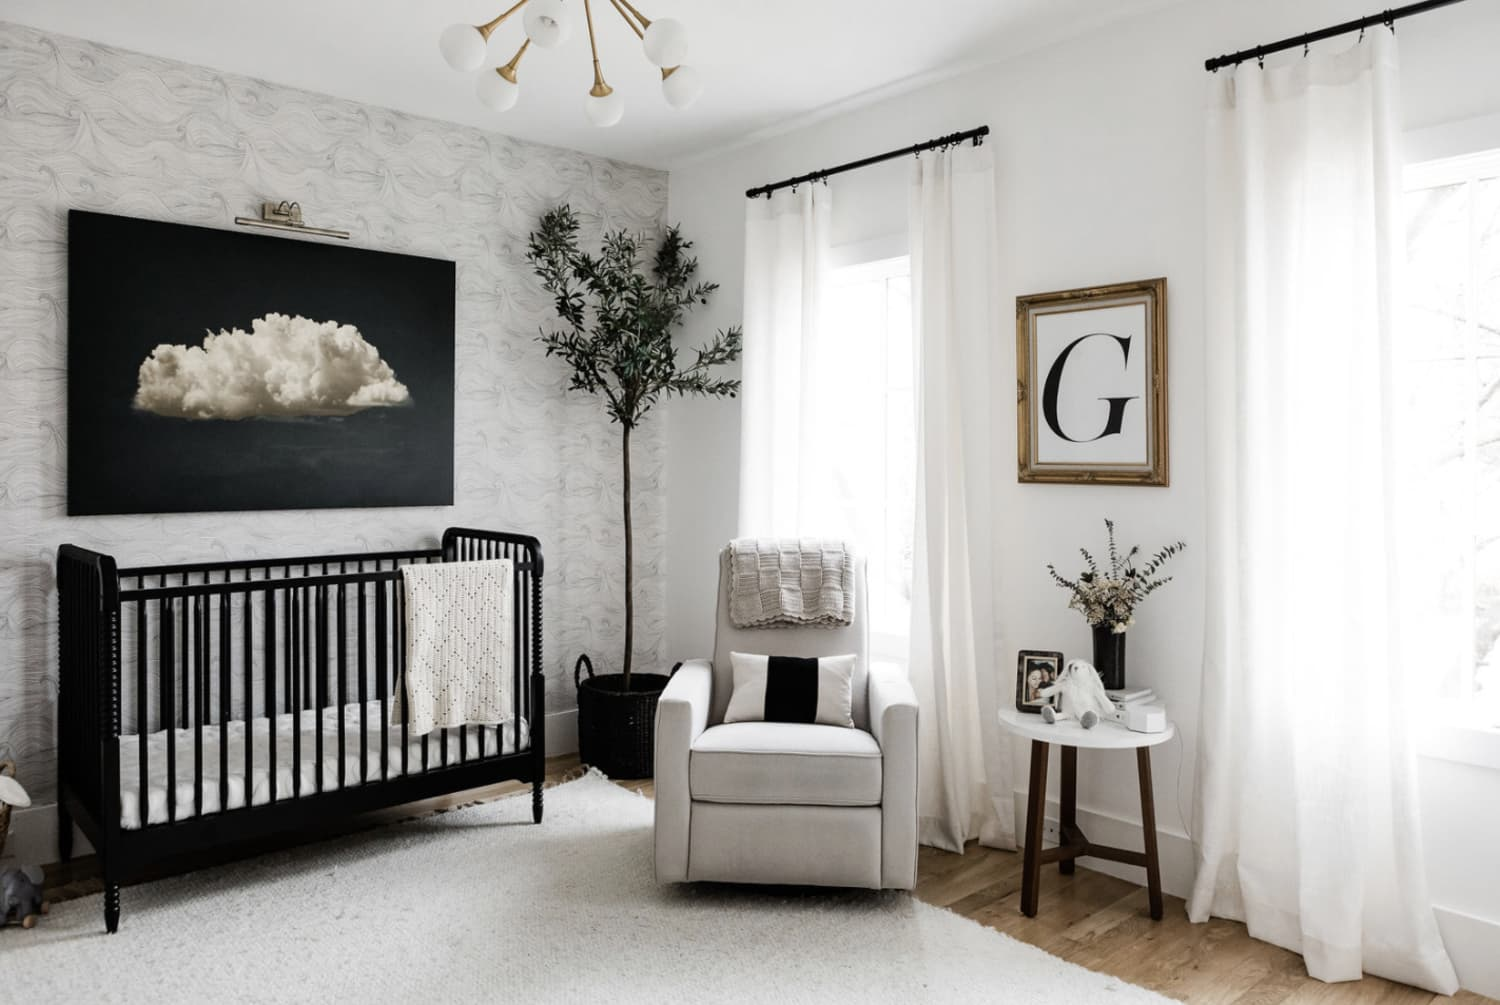 A Blogger Designed a Black-and-White Nursery That's Anything but Boring